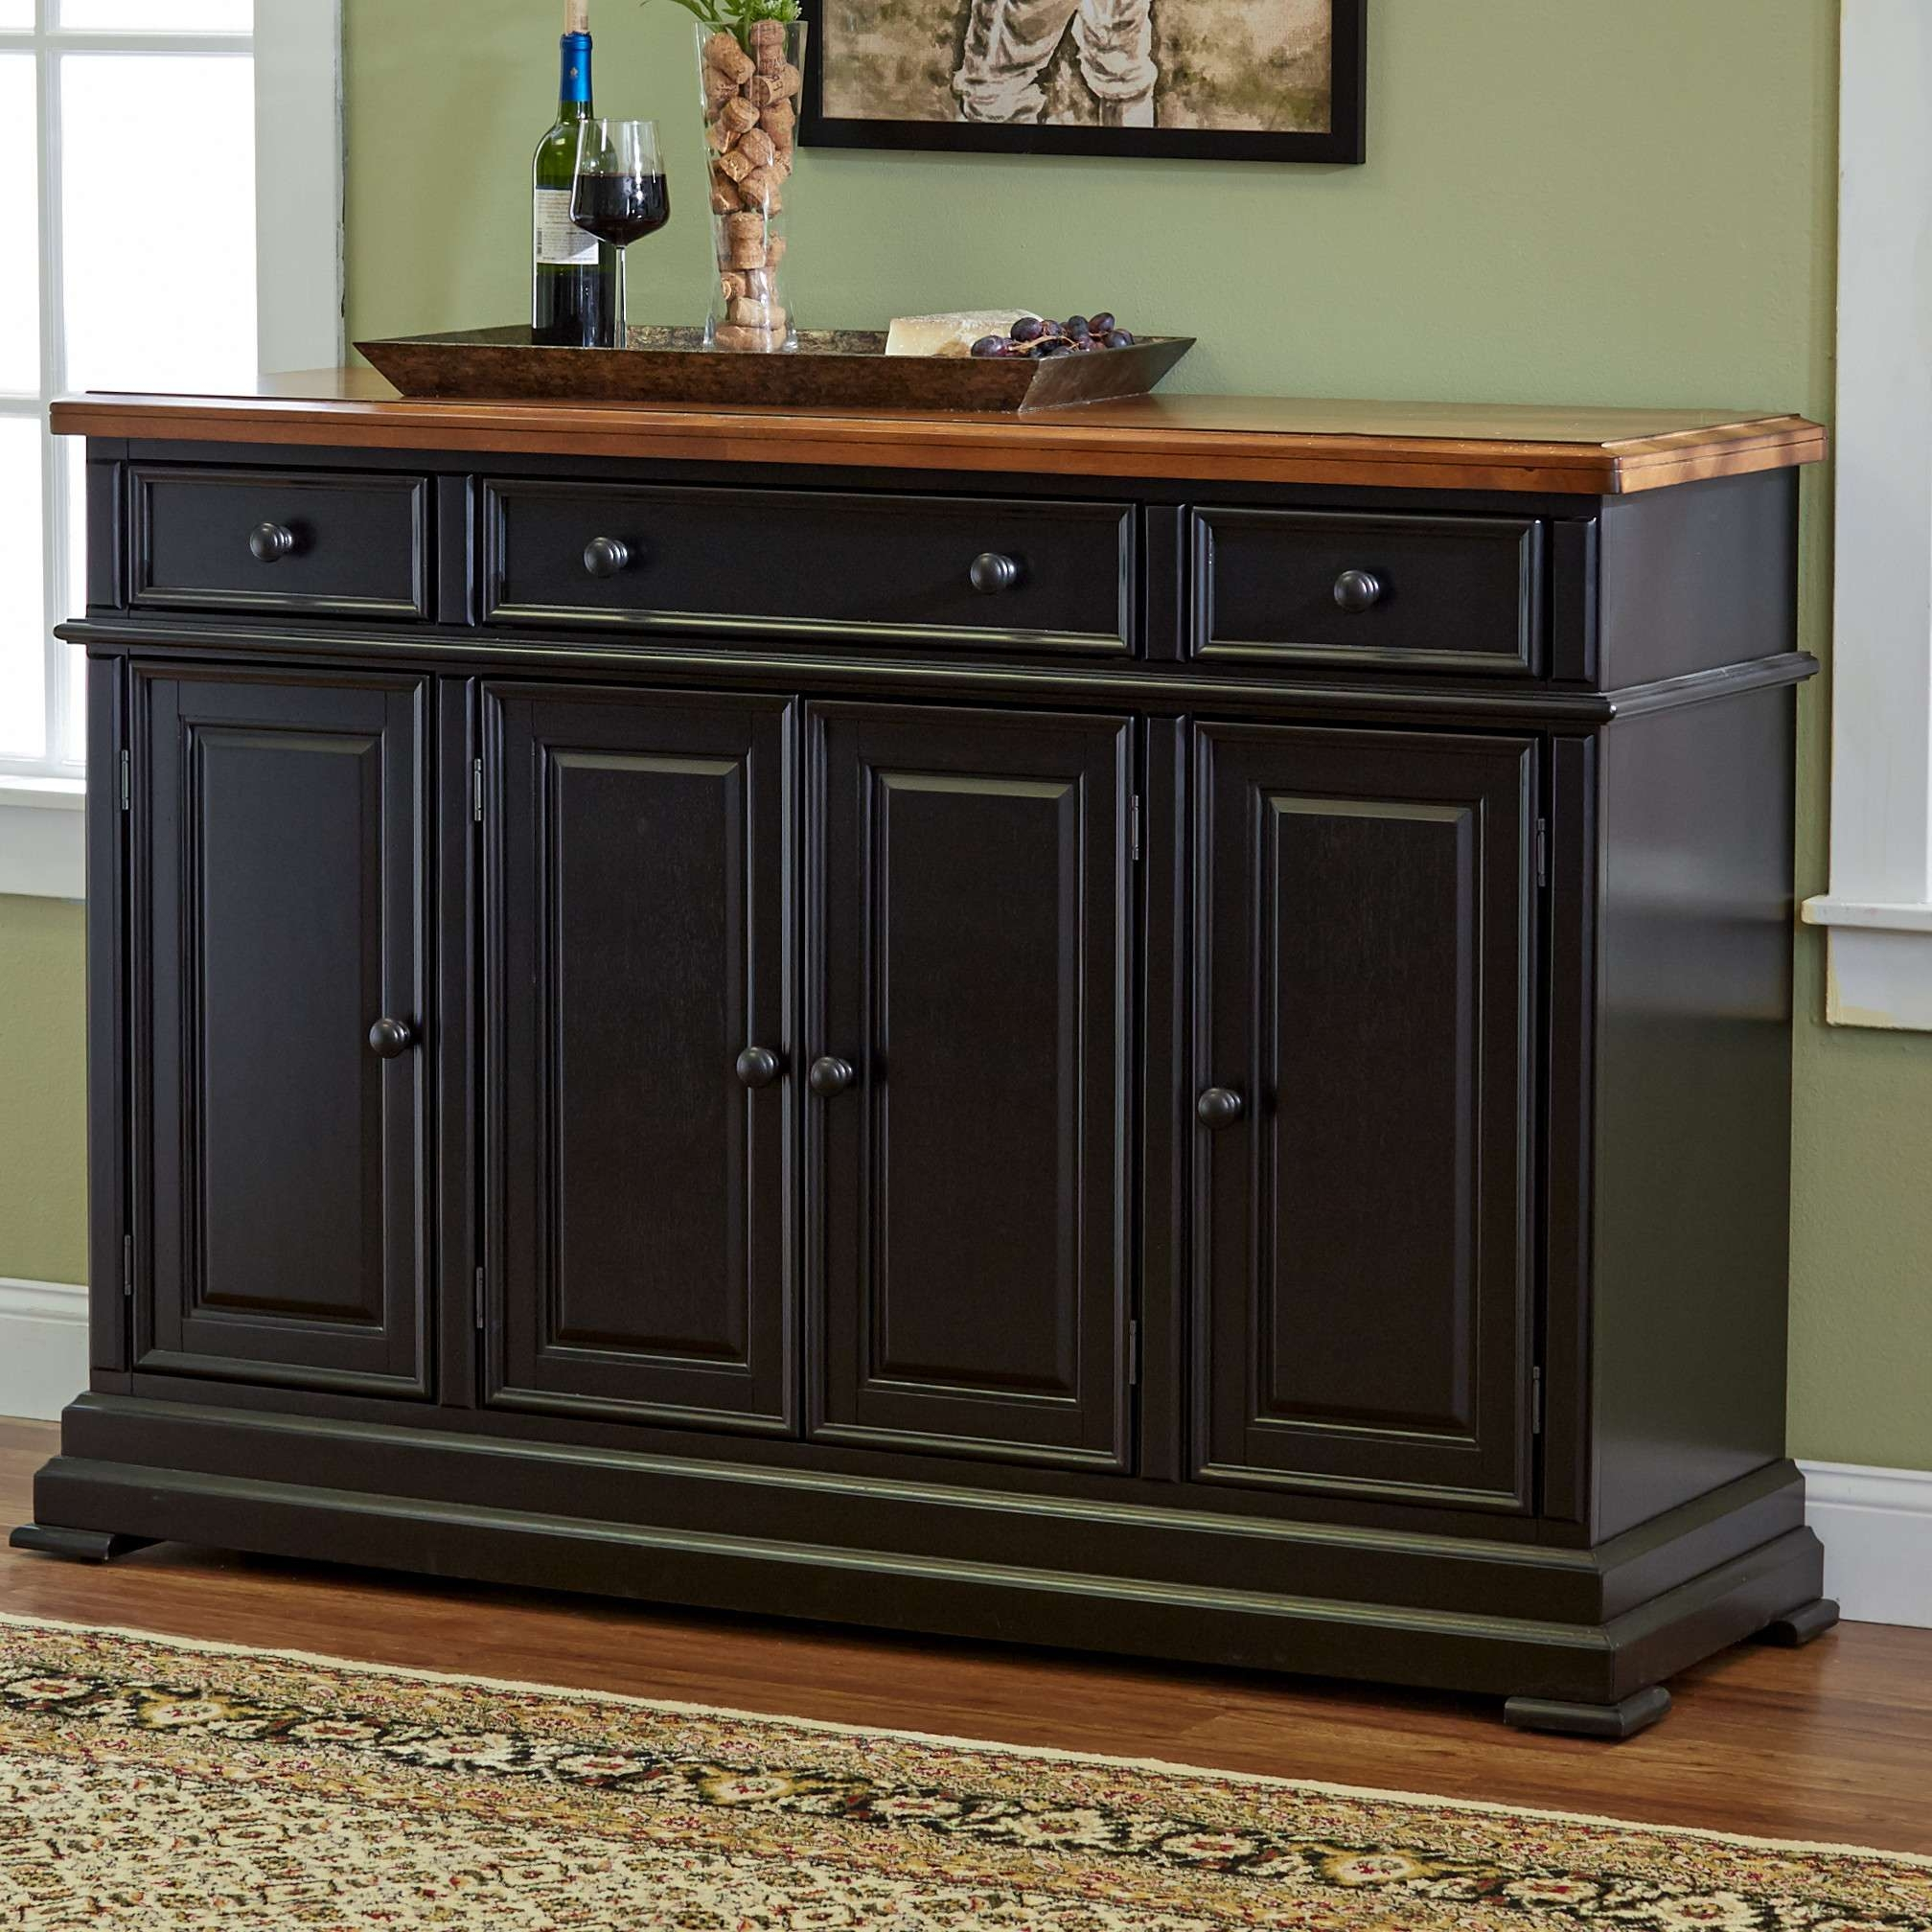 Dining Room Buffet Cabinet Sideboards Buffets Storage Servers 17 Intended For Dining Room With Sideboards (View 14 of 20)